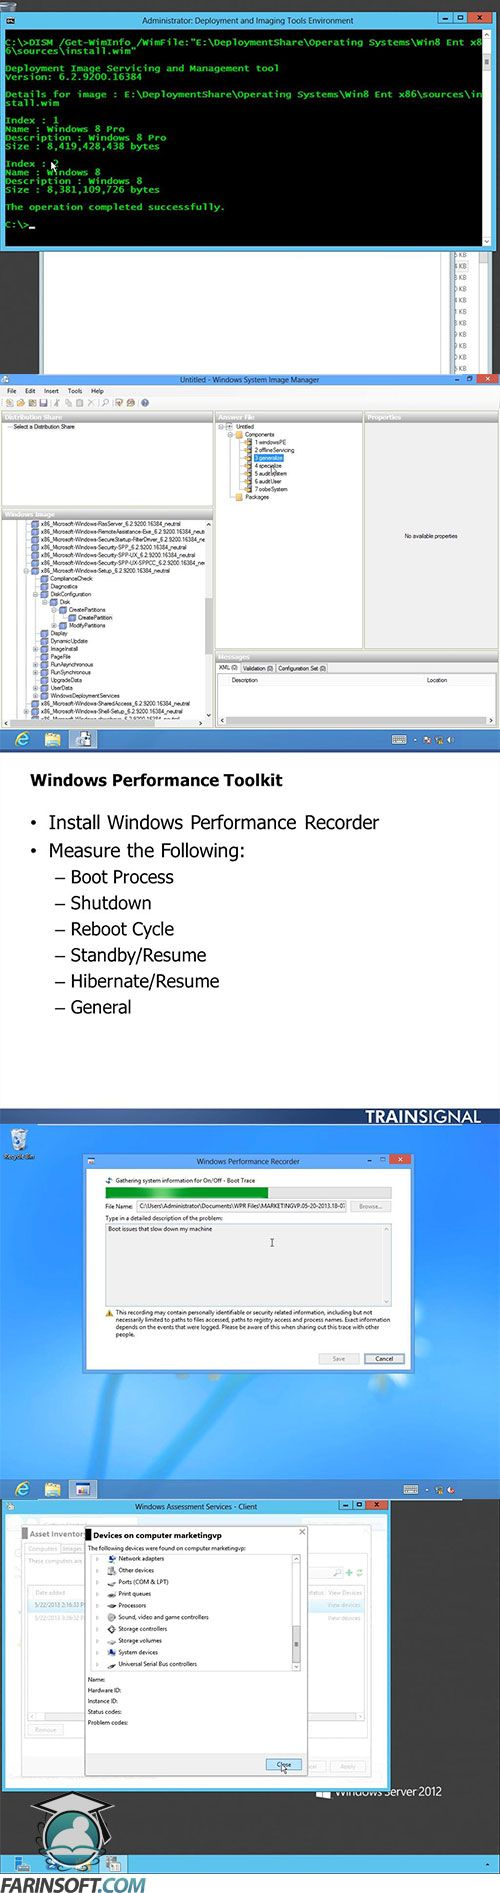 Windows-8-Deployment-with-Windows-Assessment-and-Deployment-Kit-ADK